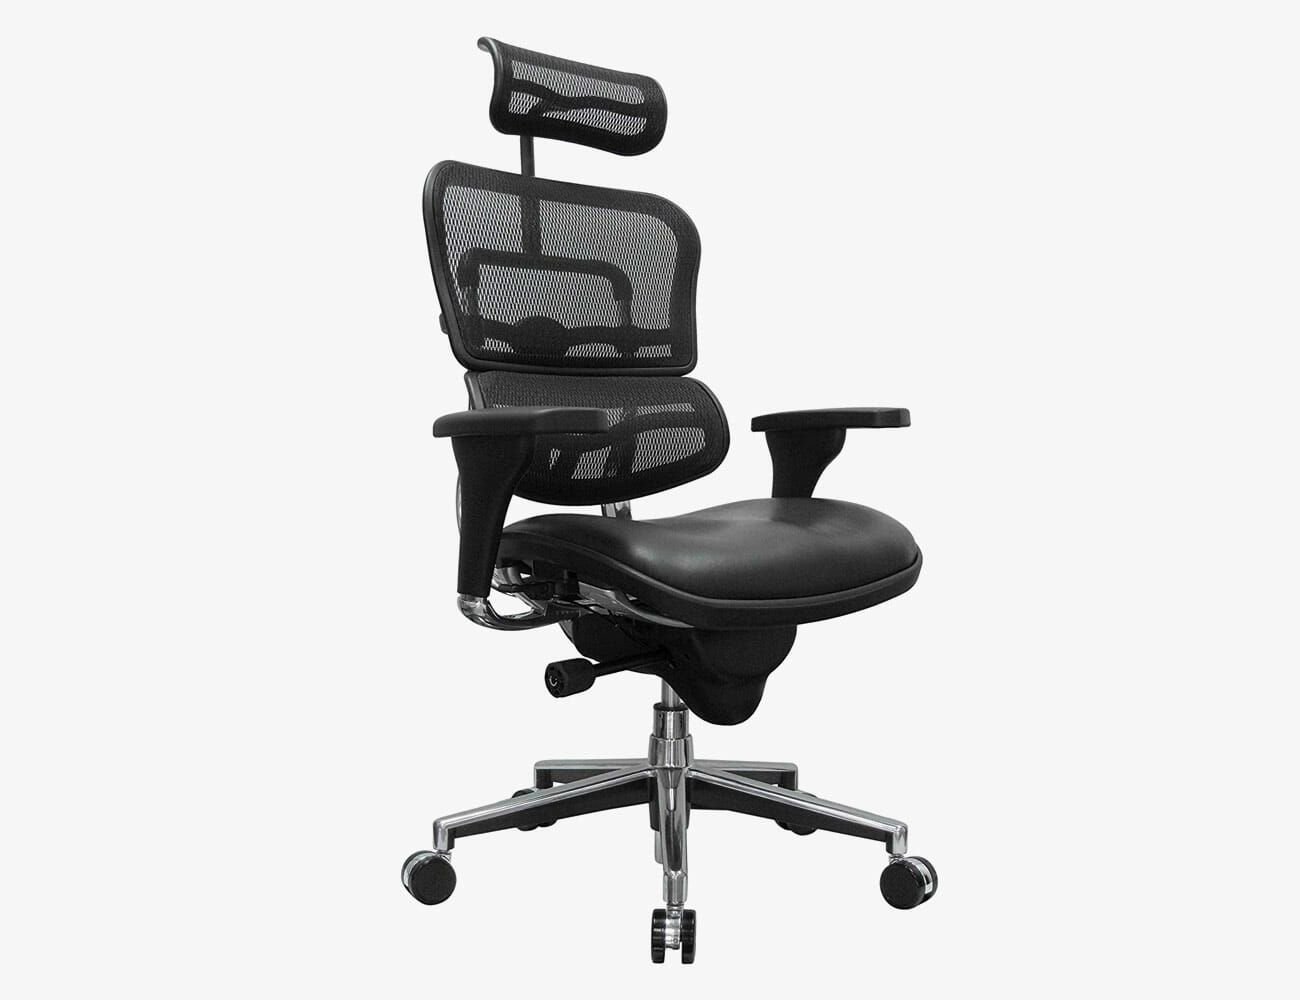 Astounding The 14 Best Office Chairs Of 2019 Gear Patrol Pabps2019 Chair Design Images Pabps2019Com